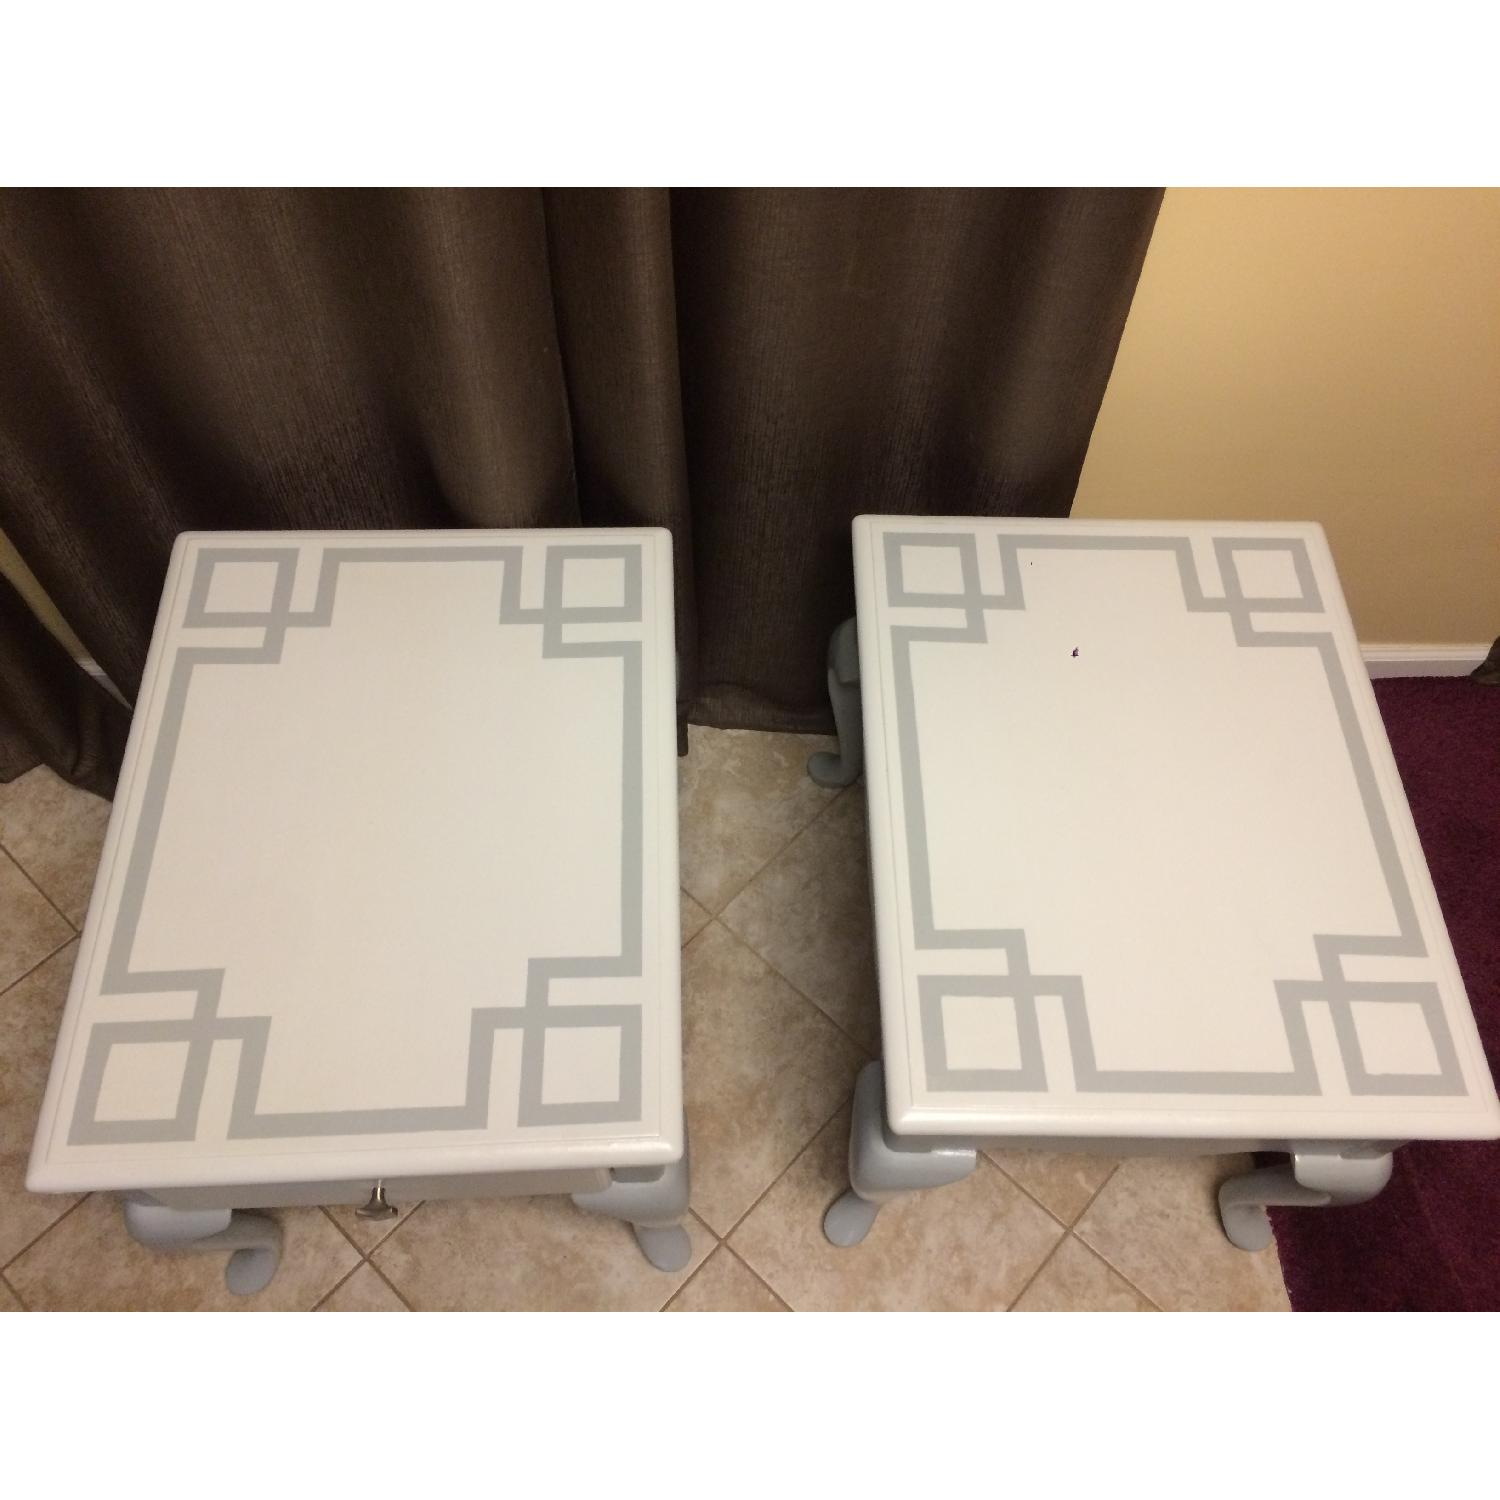 Ethan Allan Queen Anne Styled Side Tables in Gray - Pair - image-2